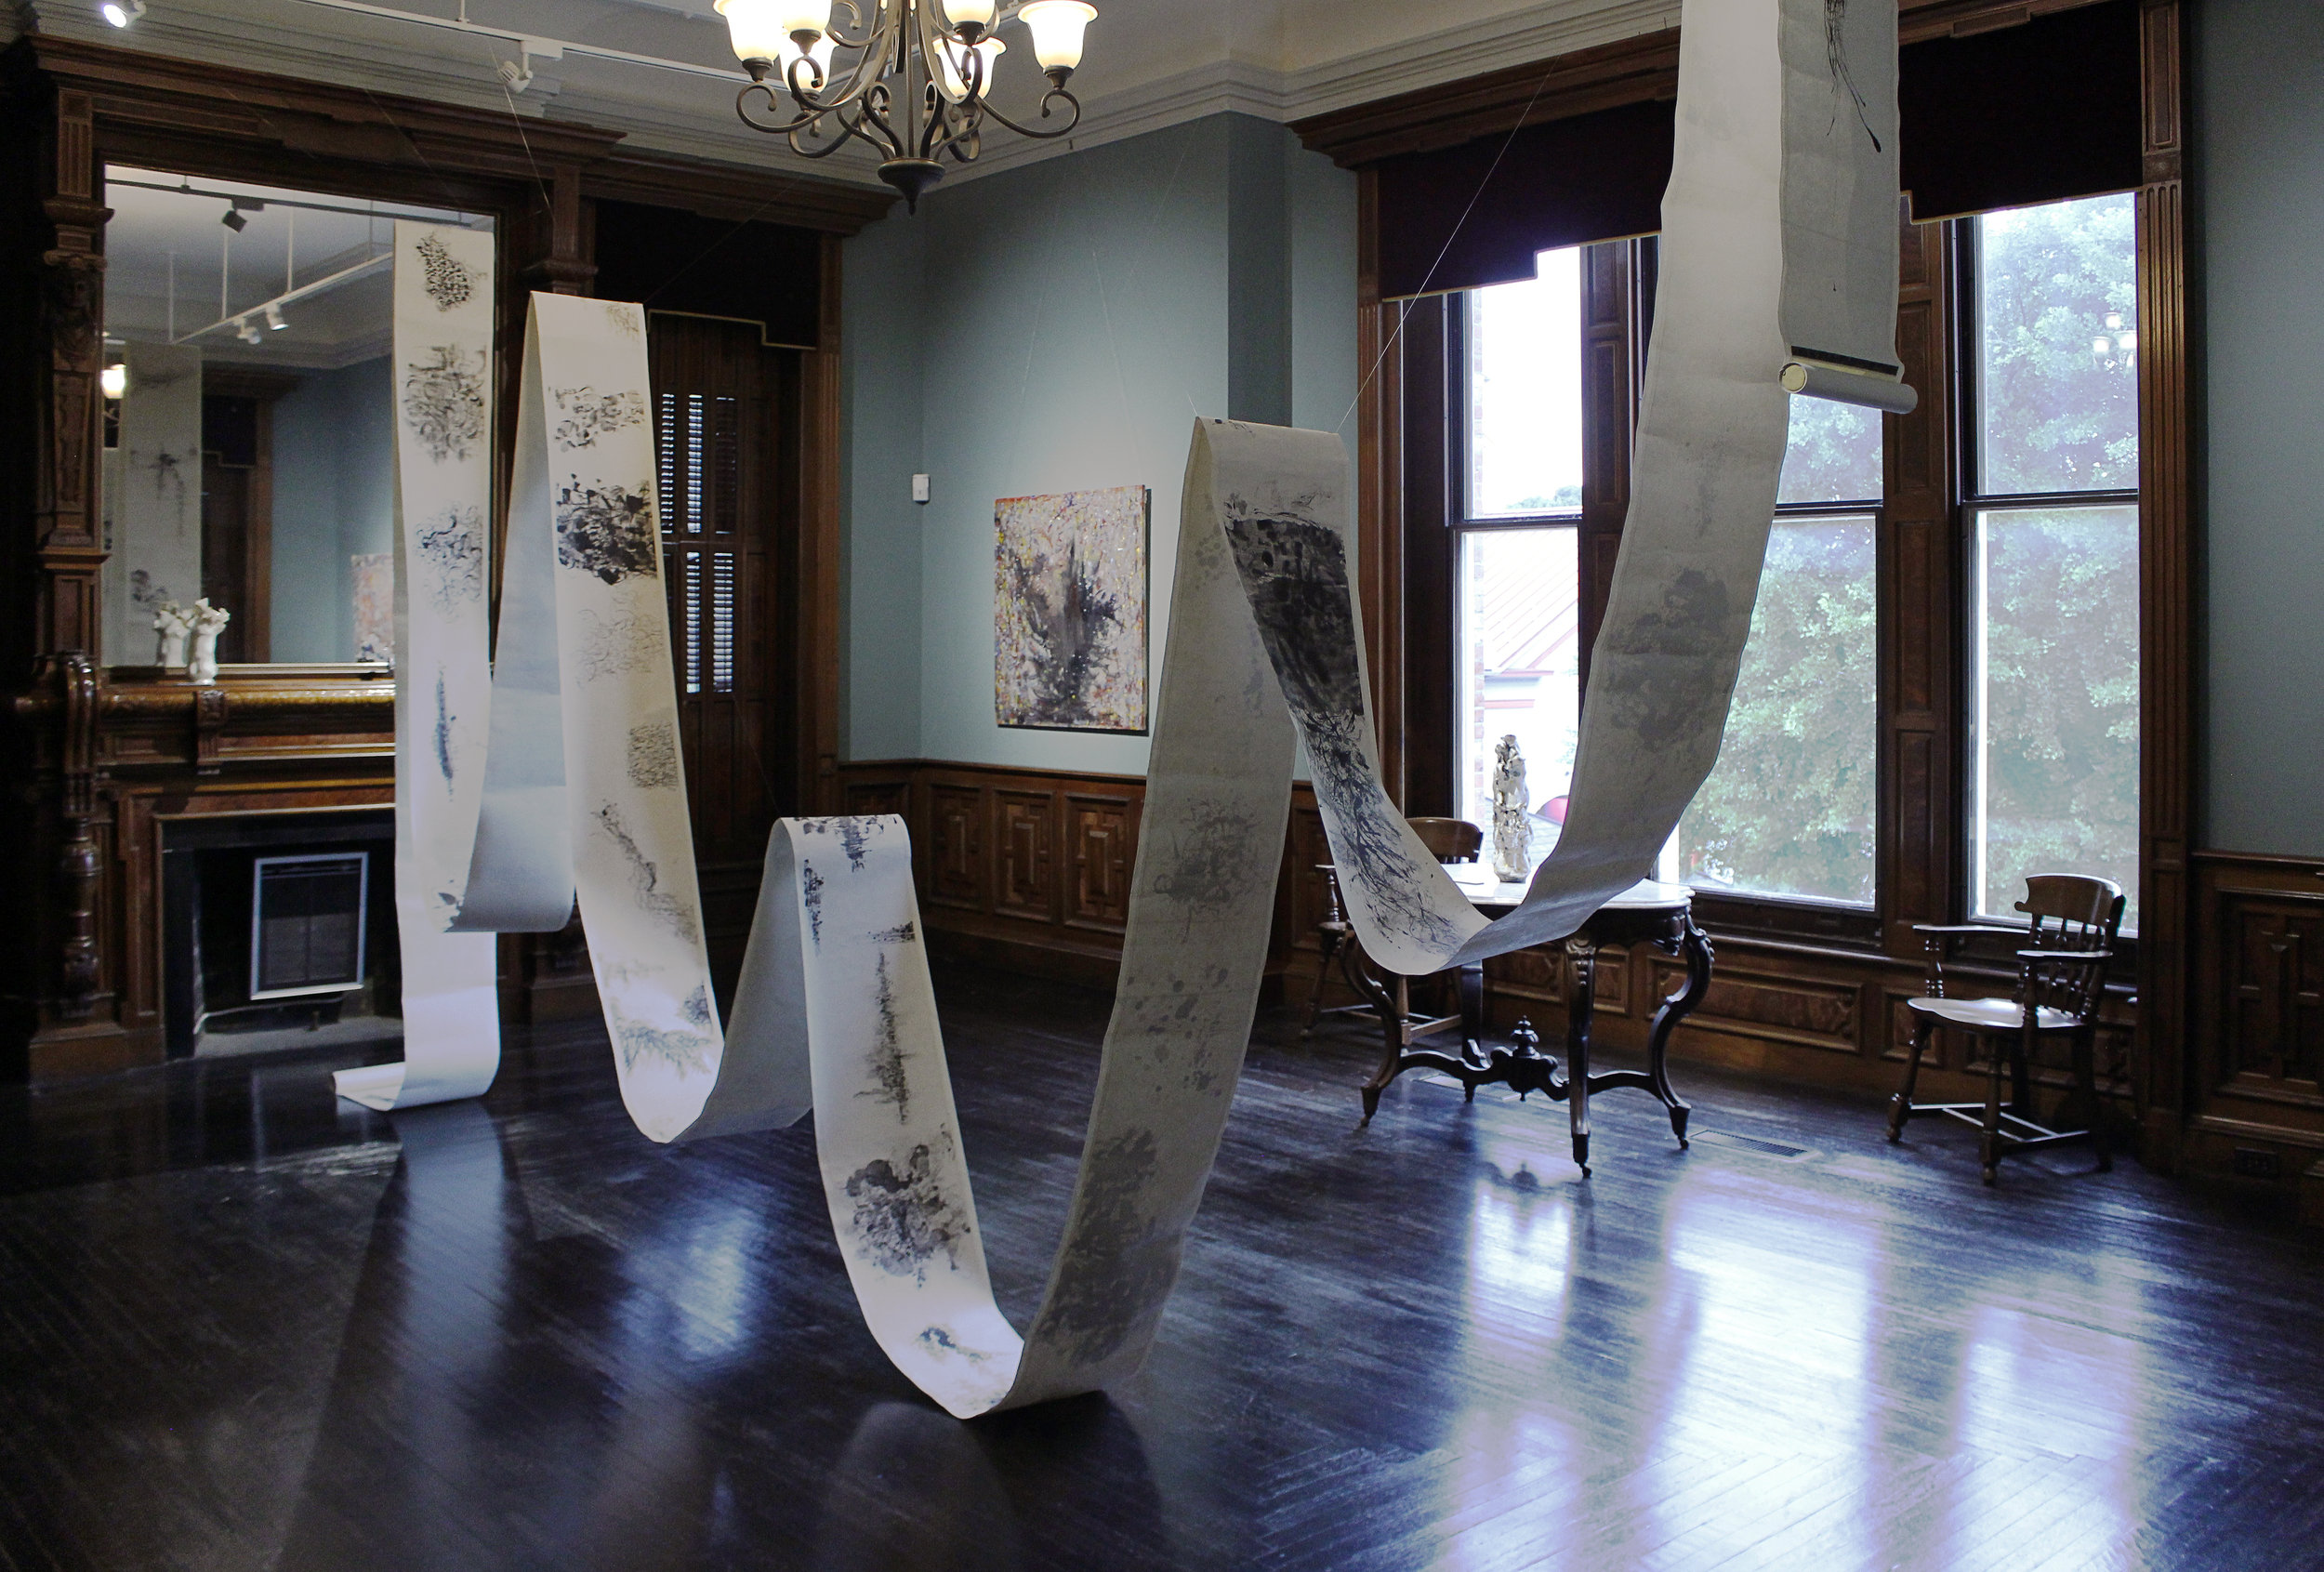 Renqian Yang Solo Exhibition at the Cayuga Museum of History and Art  installation view. Photograph by Siyuan Tan, Edited by Yuan Fang. ©Renqian Yang, courtesy Cayuga Museum of History and Art and Fou Gallery.